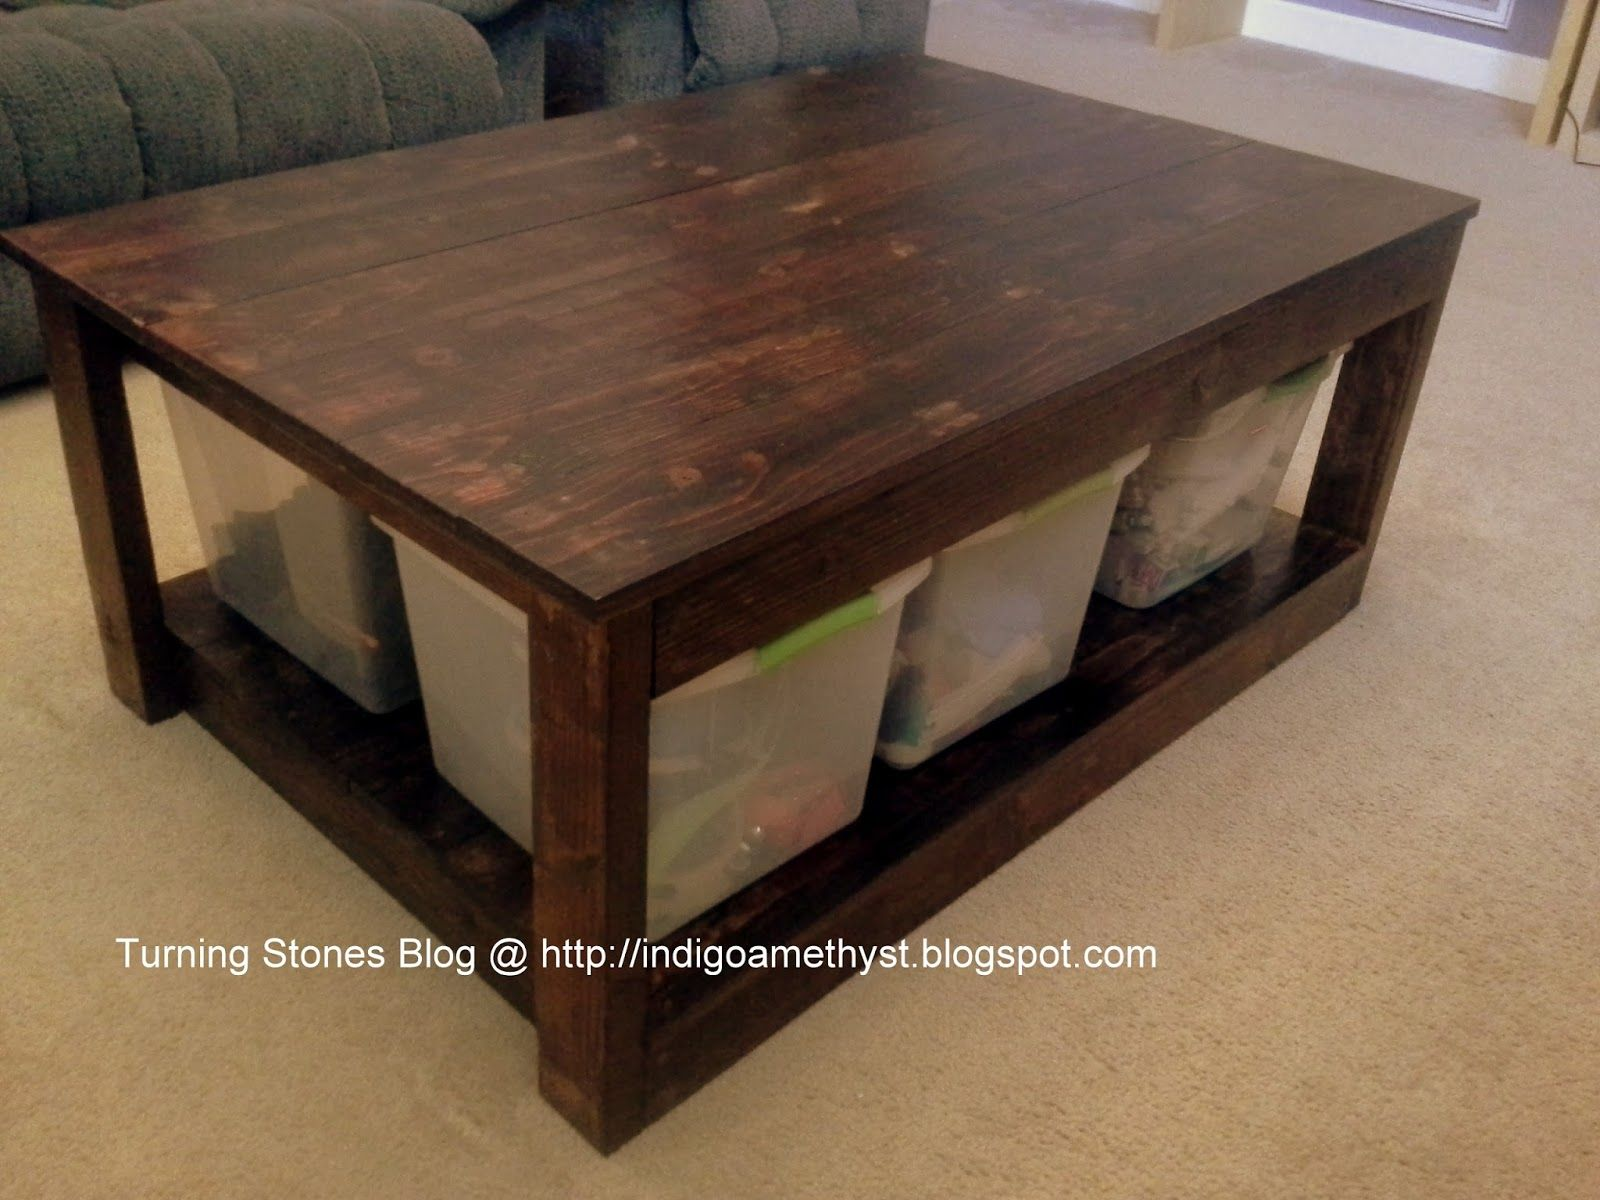 Turning stones blog homemade coffee table living room turning stones blog homemade coffee table geotapseo Gallery